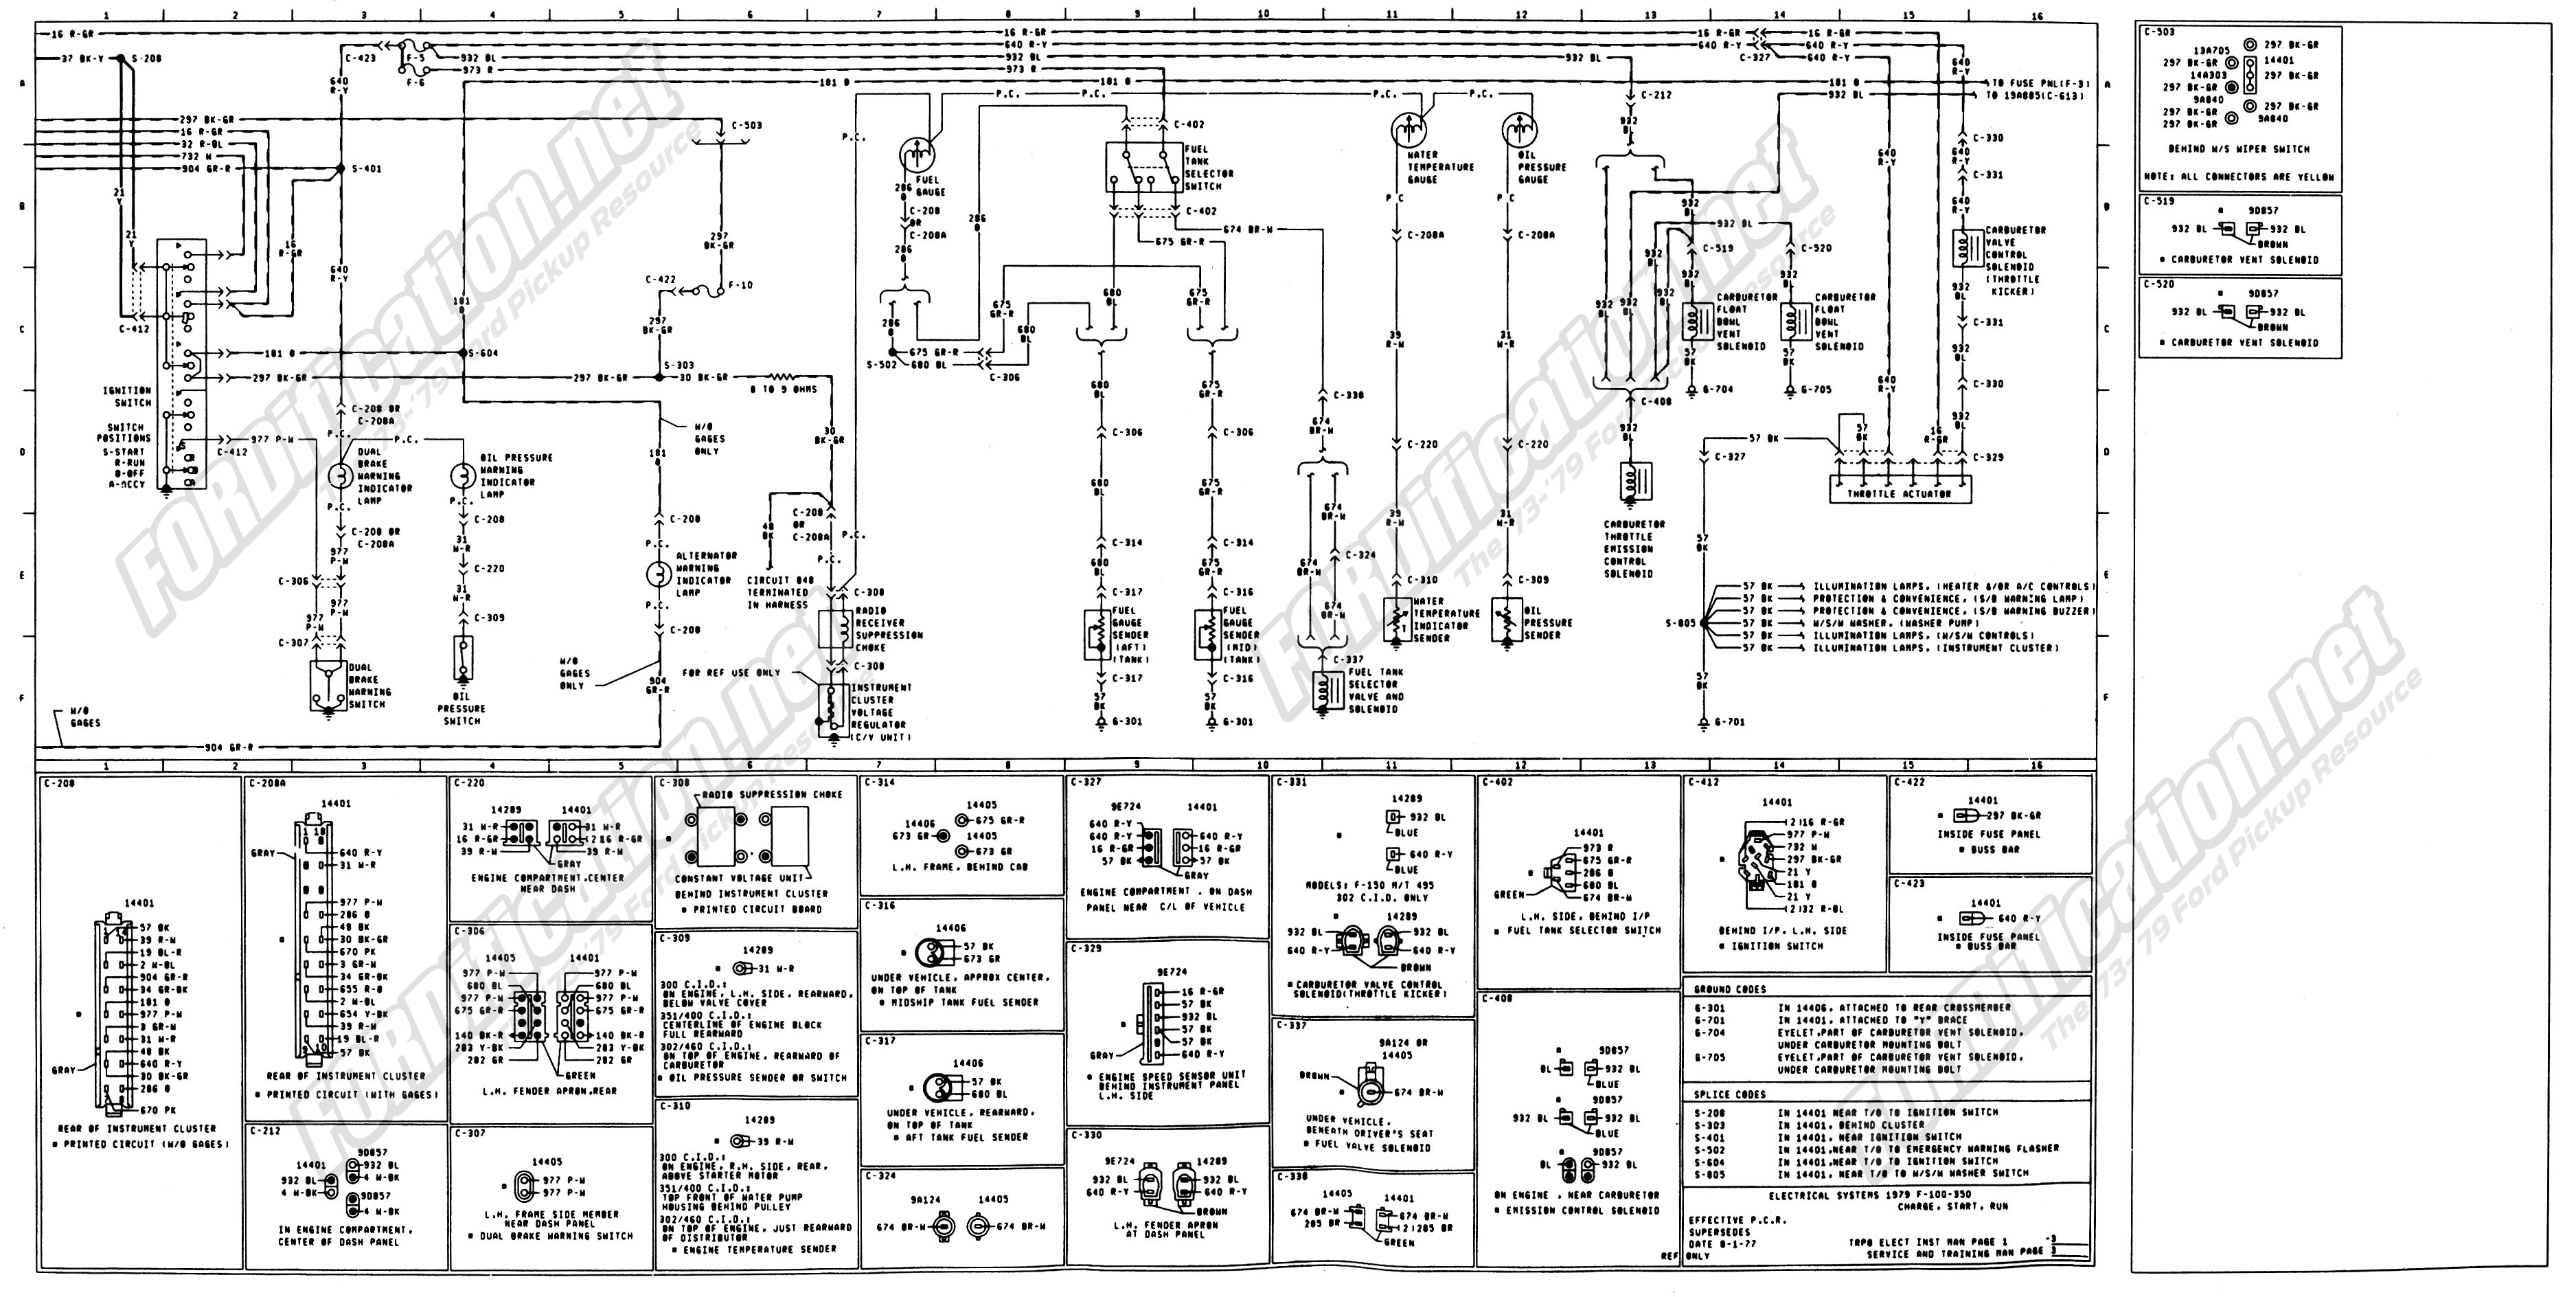 1973 F250 Wiring Diagram Change Your Idea With Design 2006 Ford Mustang Harness 1979 Truck Diagrams Schematics Fordification Net Rh Bronco